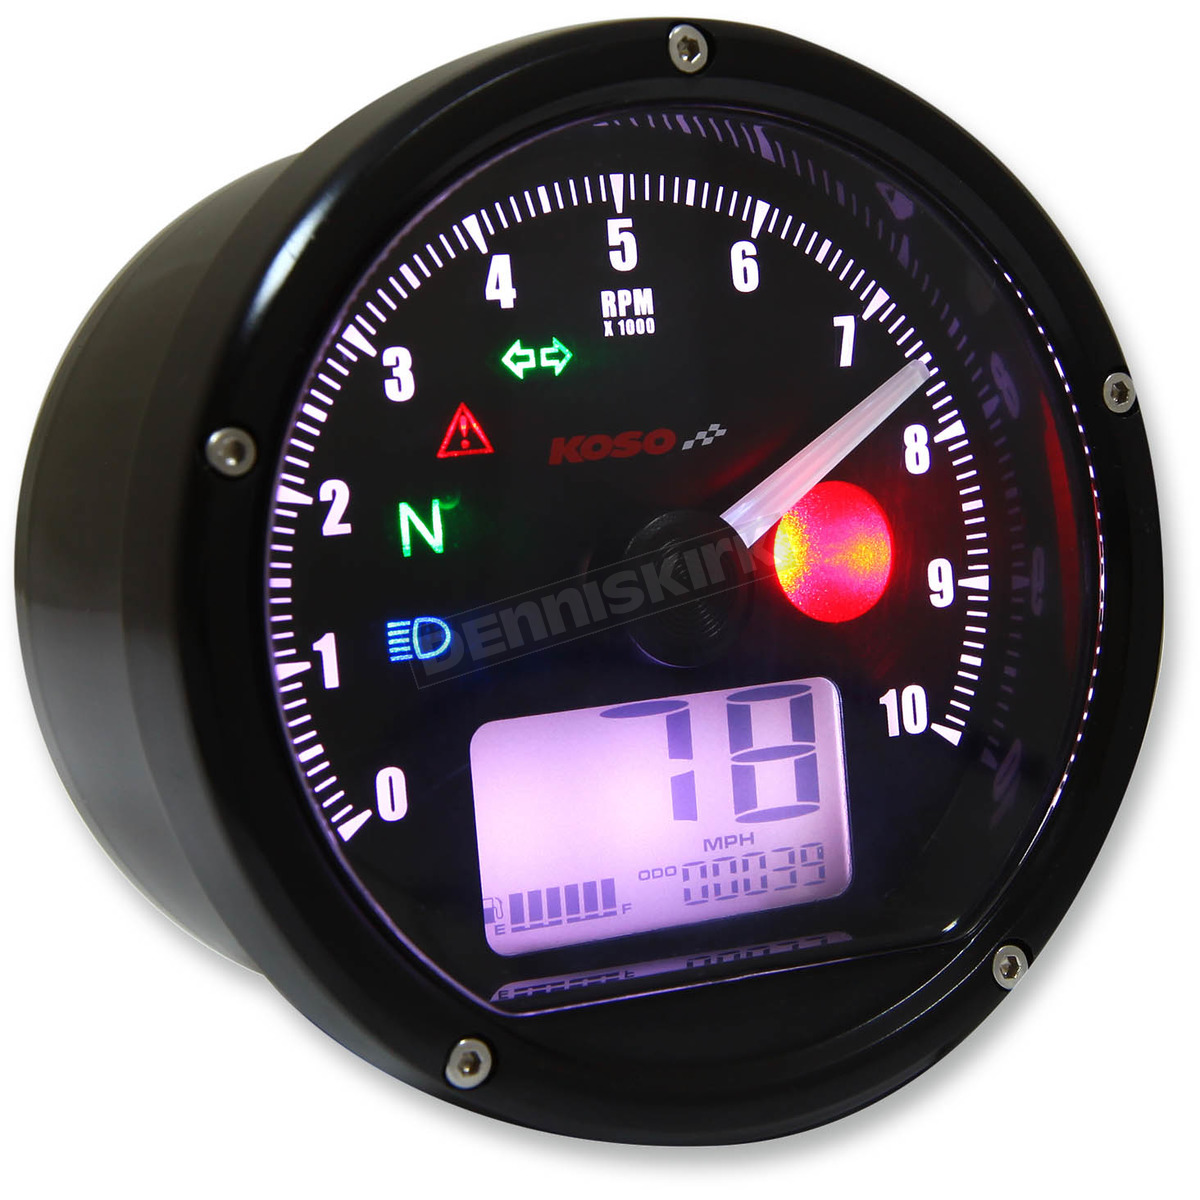 T and T Tachometer/Sdometer - BA035K00 Harley Sdometer Tachometer Wiring Diagram on